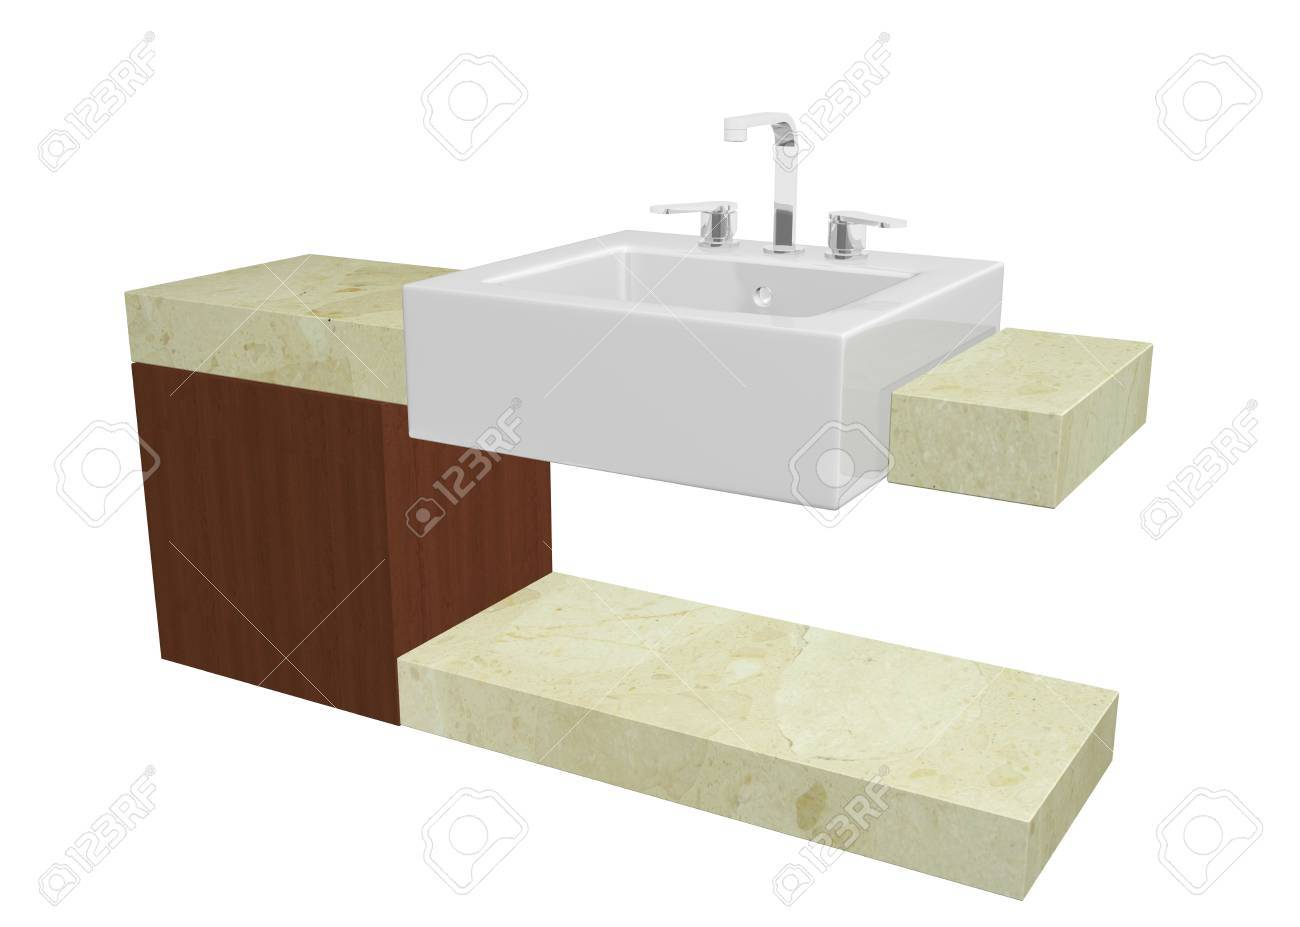 White square sink with chrome faucet, sitting on a marble table or countertop with a mohagany wooden cabinet, isolated against a white background Stock Photo - 10695677